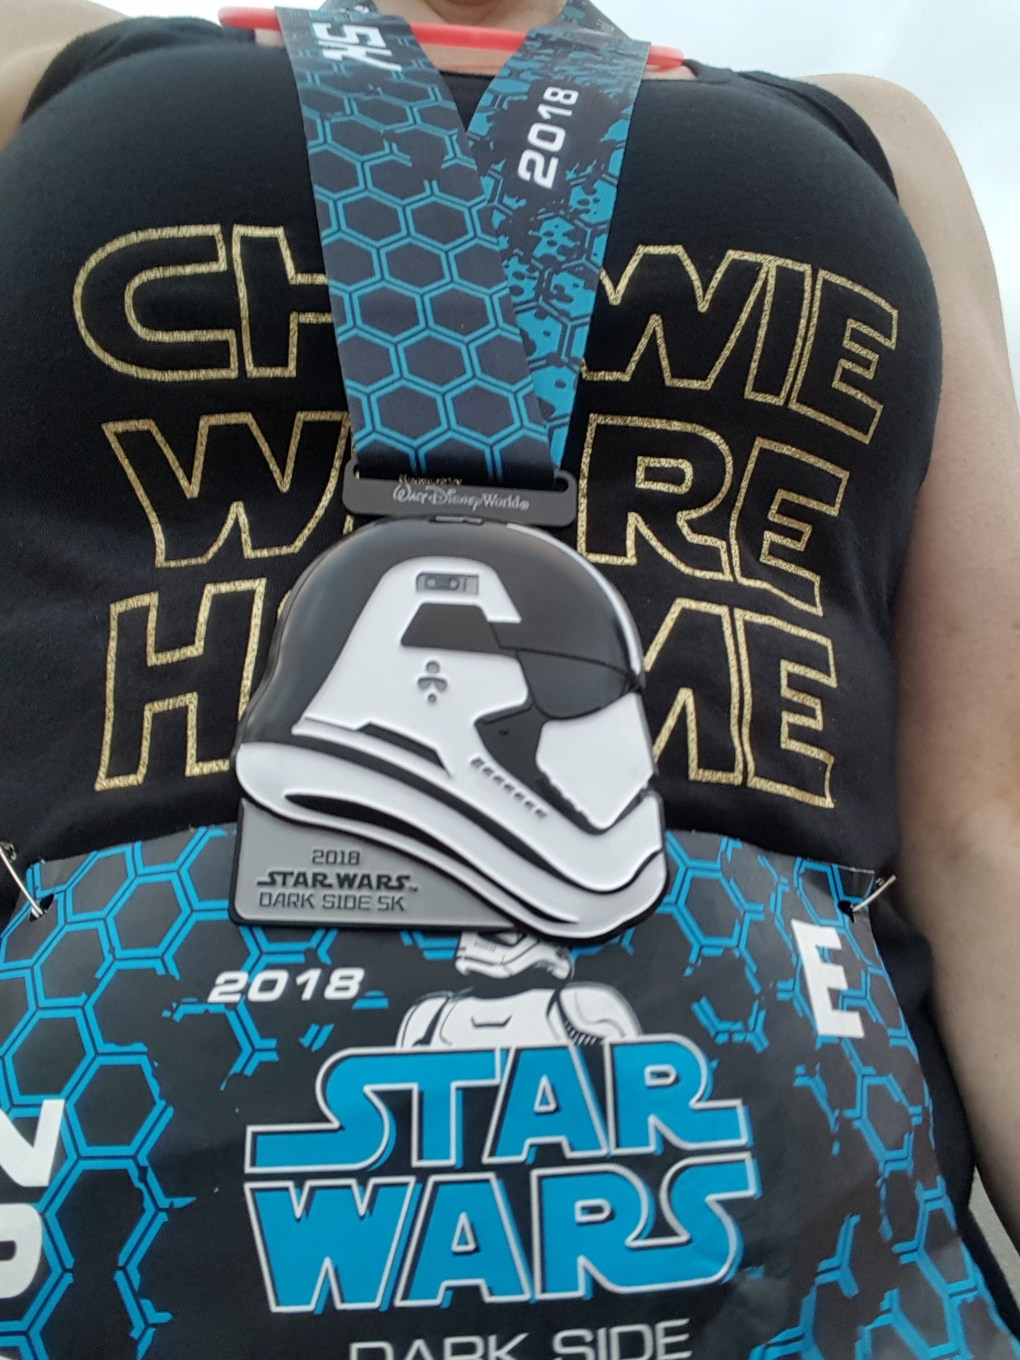 Star Wars Half Marathon - Dark Side 5K medal, April 2018